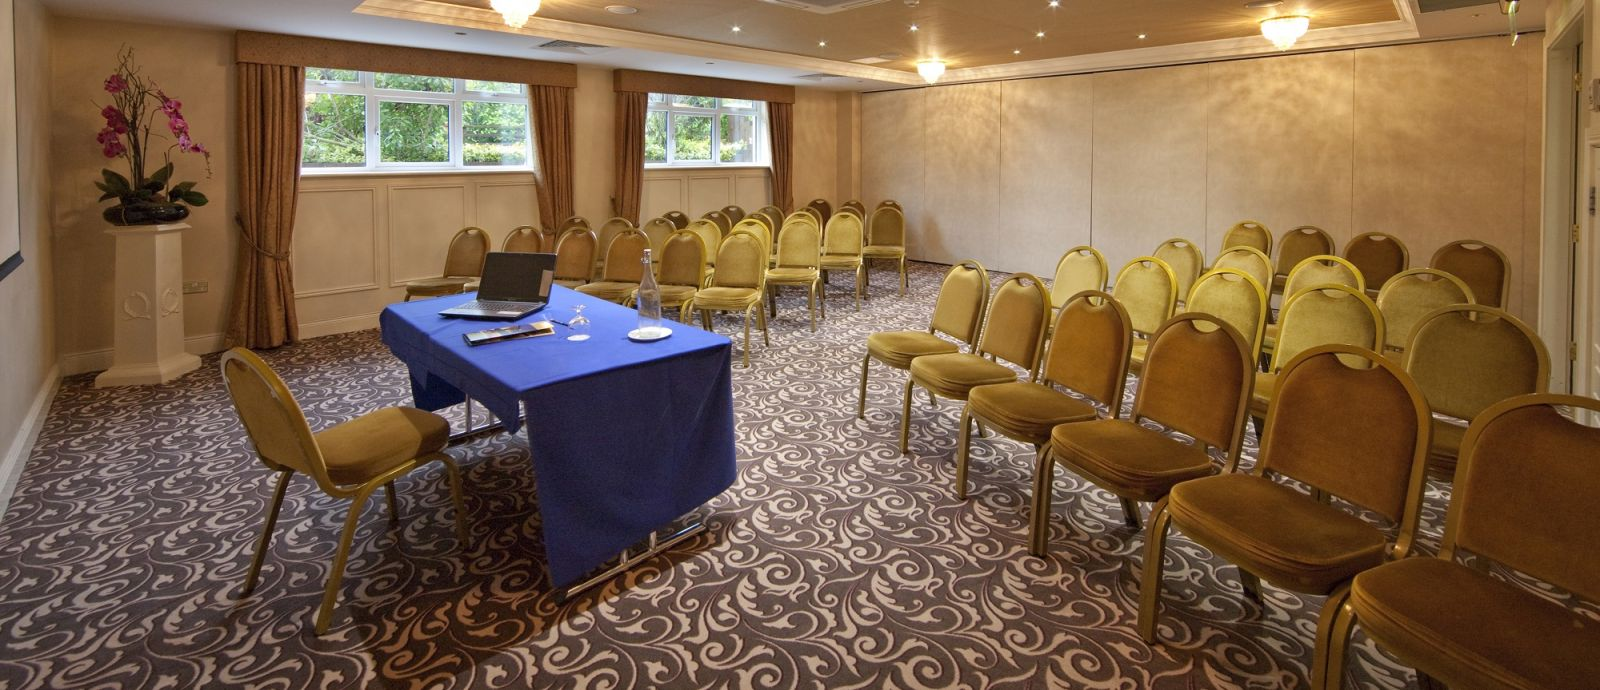 Conference in Leixlip